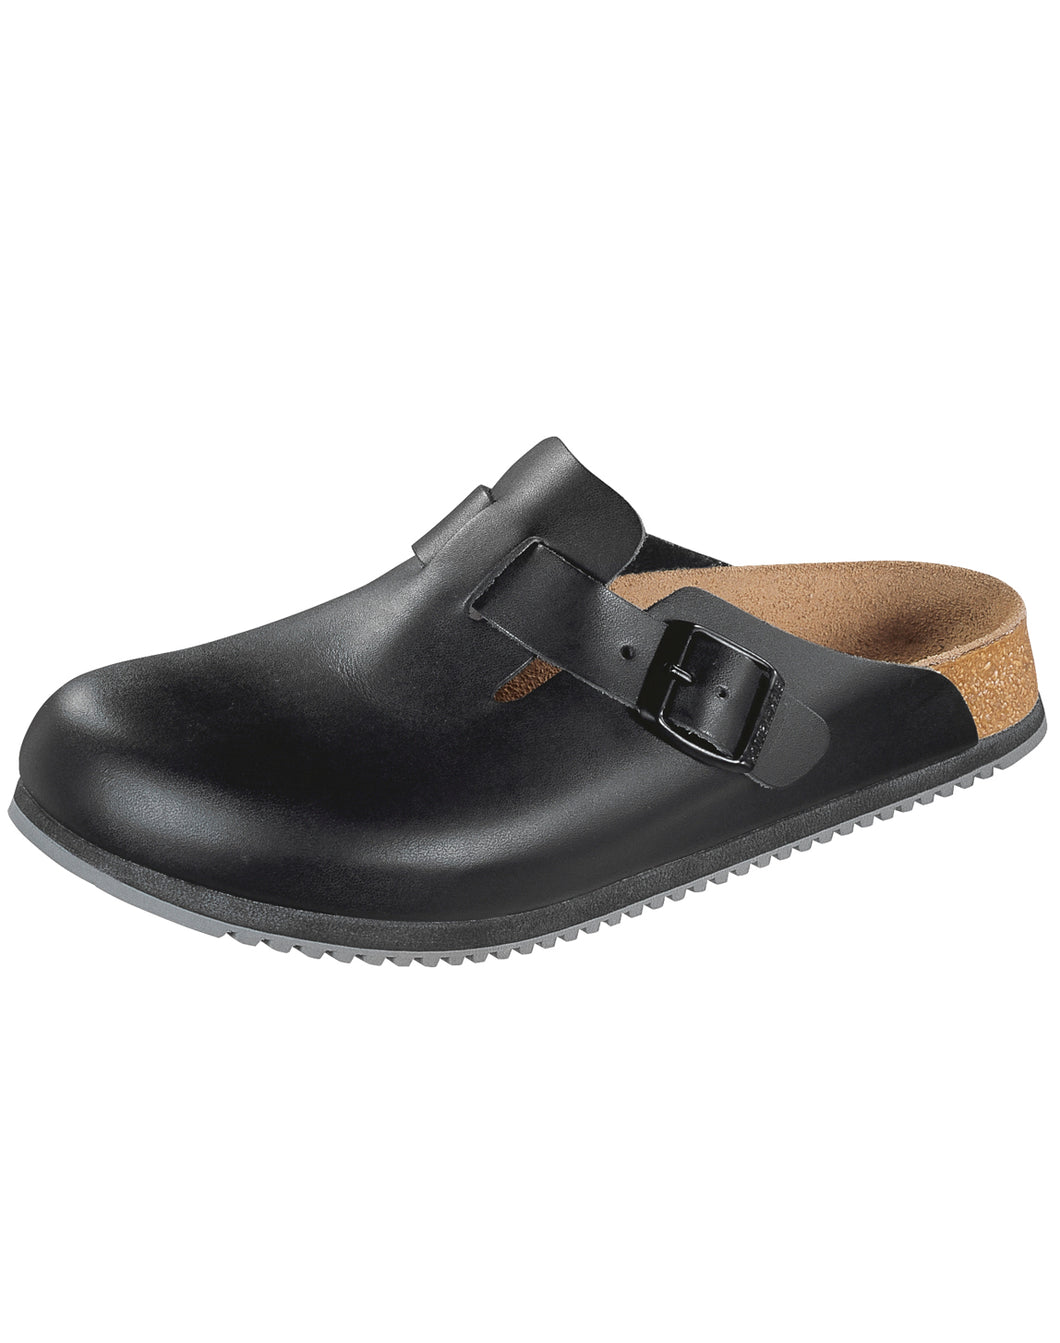 BIRKENSTOCK BOSTON NL SMOOTH LEATHER BLACK NARROW